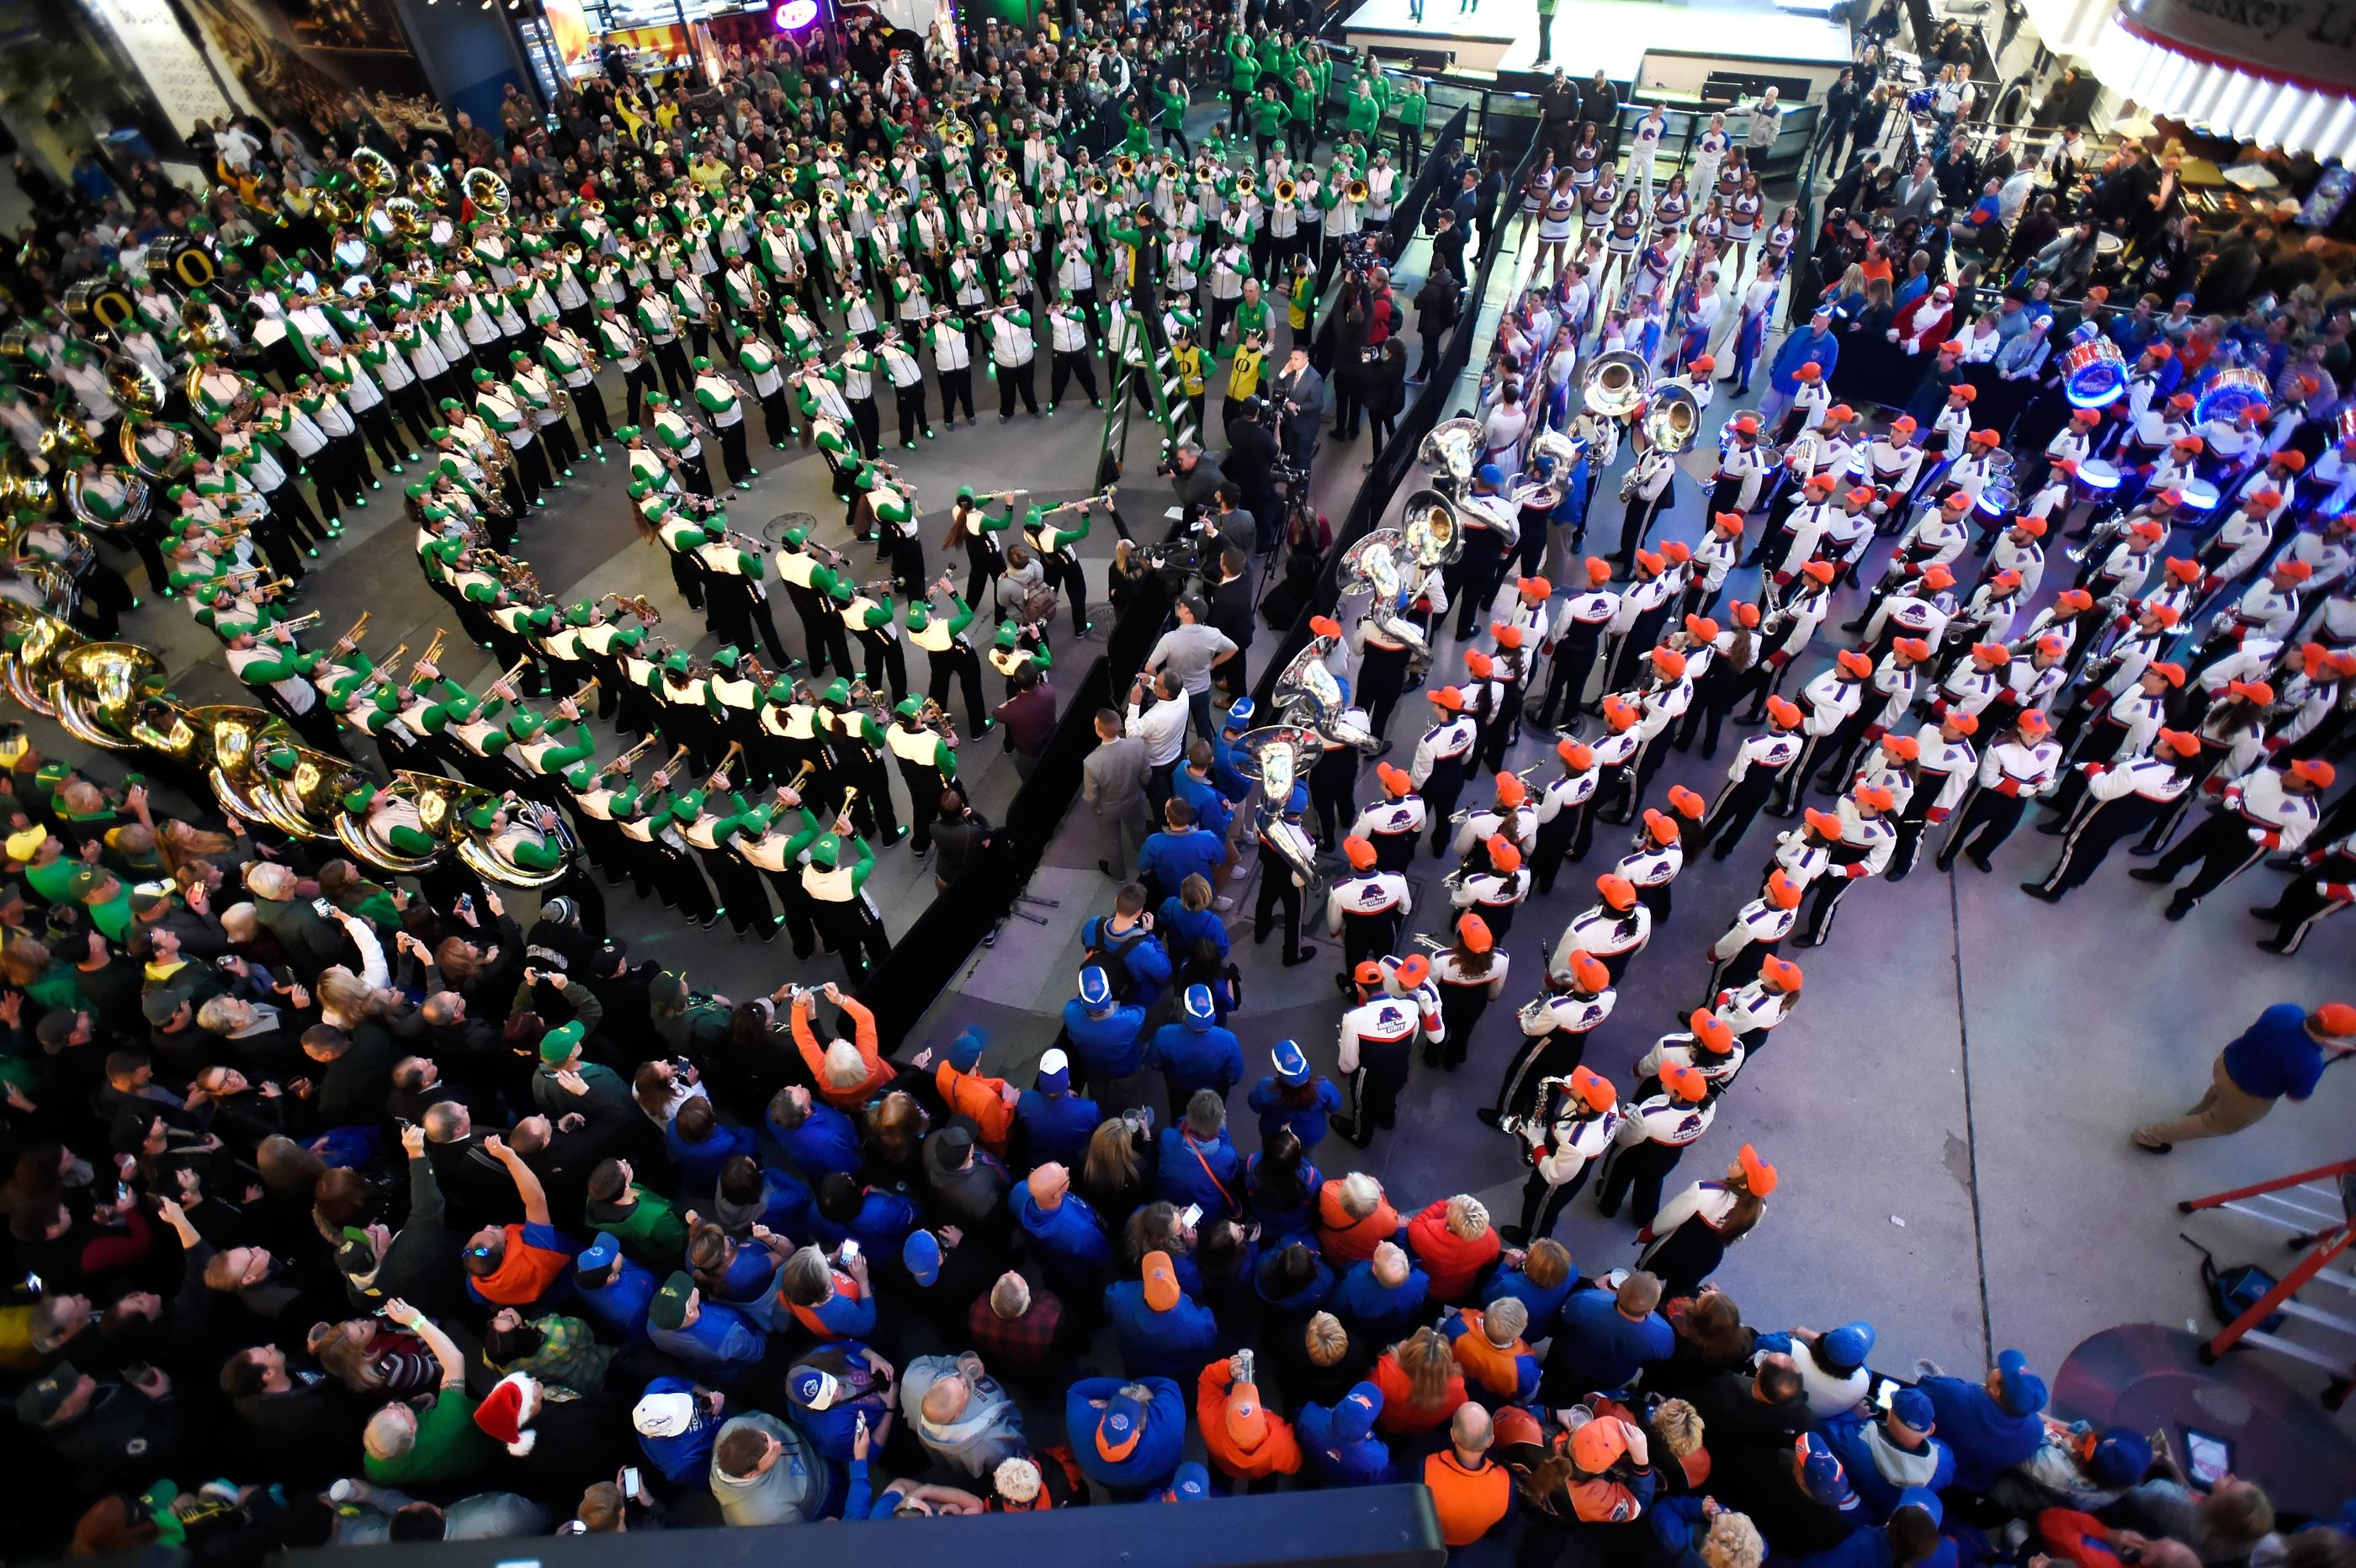 The Oregon and Boise State marching bands participate during a pep rally at the Fremont Street Experience Friday, Dec. 15, 2017, in Las Vegas. The Boise State Bronco will take on the Oregon Ducks in the 26th edition of the Las Vegas Bowl at Sam Boyd Stadium on Saturday. CREDIT: David Becker/Las Vegas News Bureau